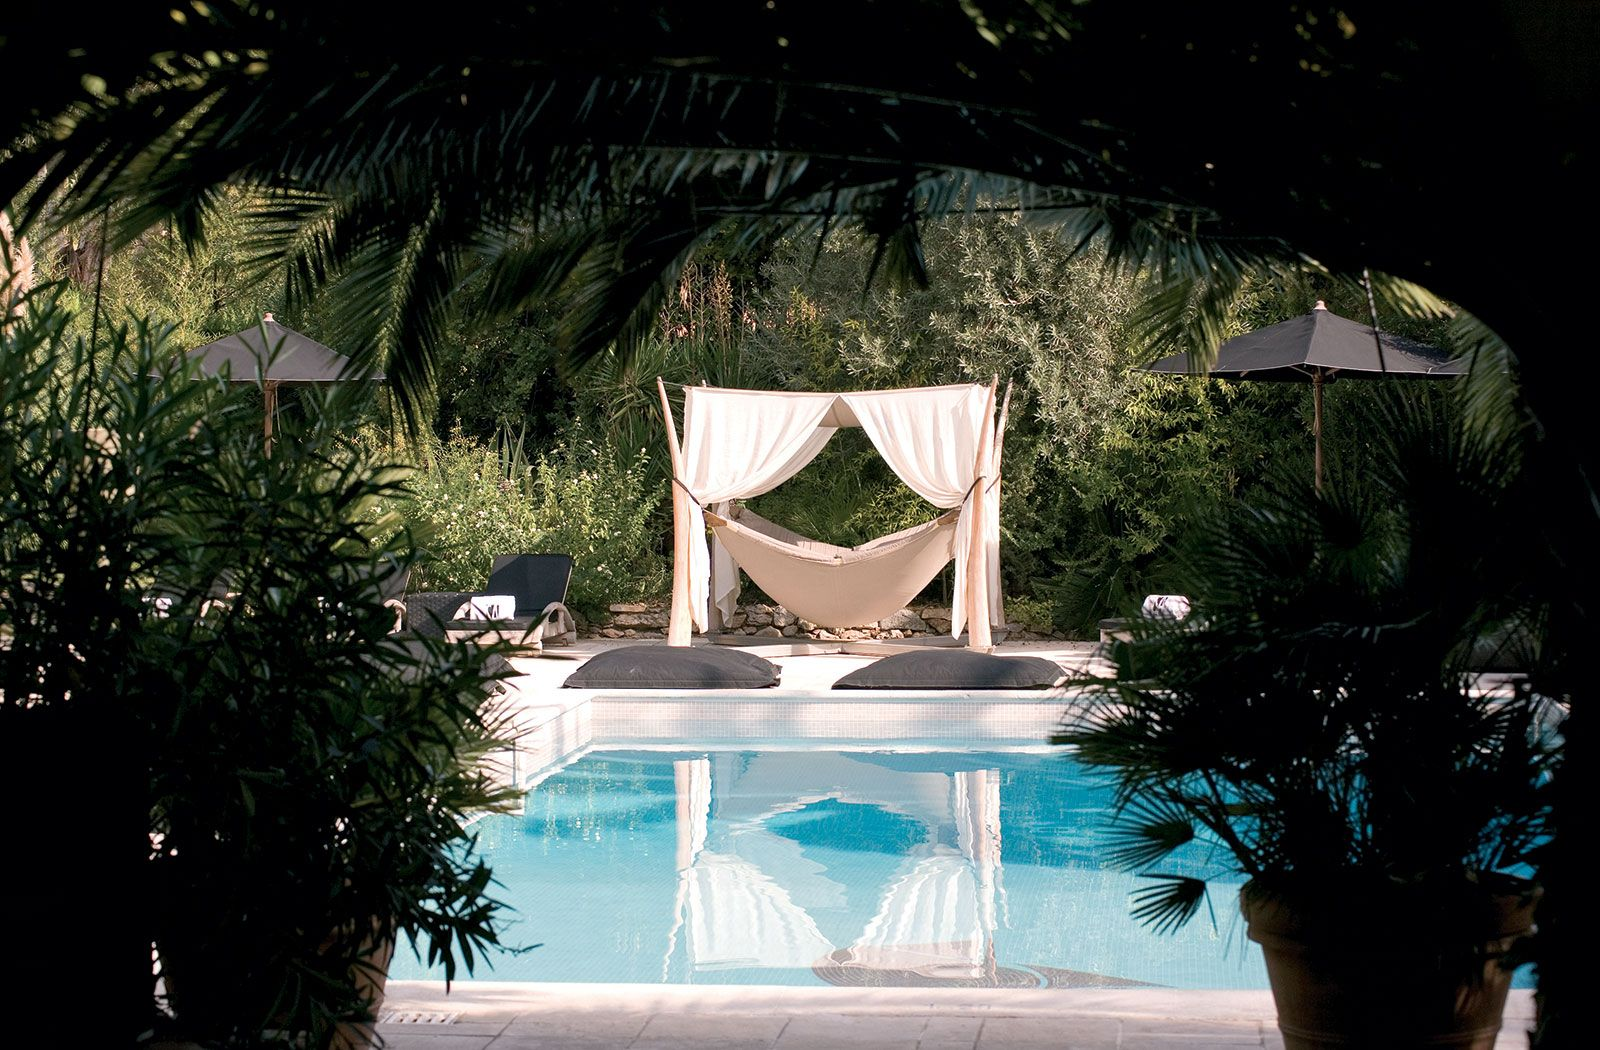 Charmant Photo Gallery Luxury Hotel Spa Saint Tropez | Saint Amour La Tartane  Pictures